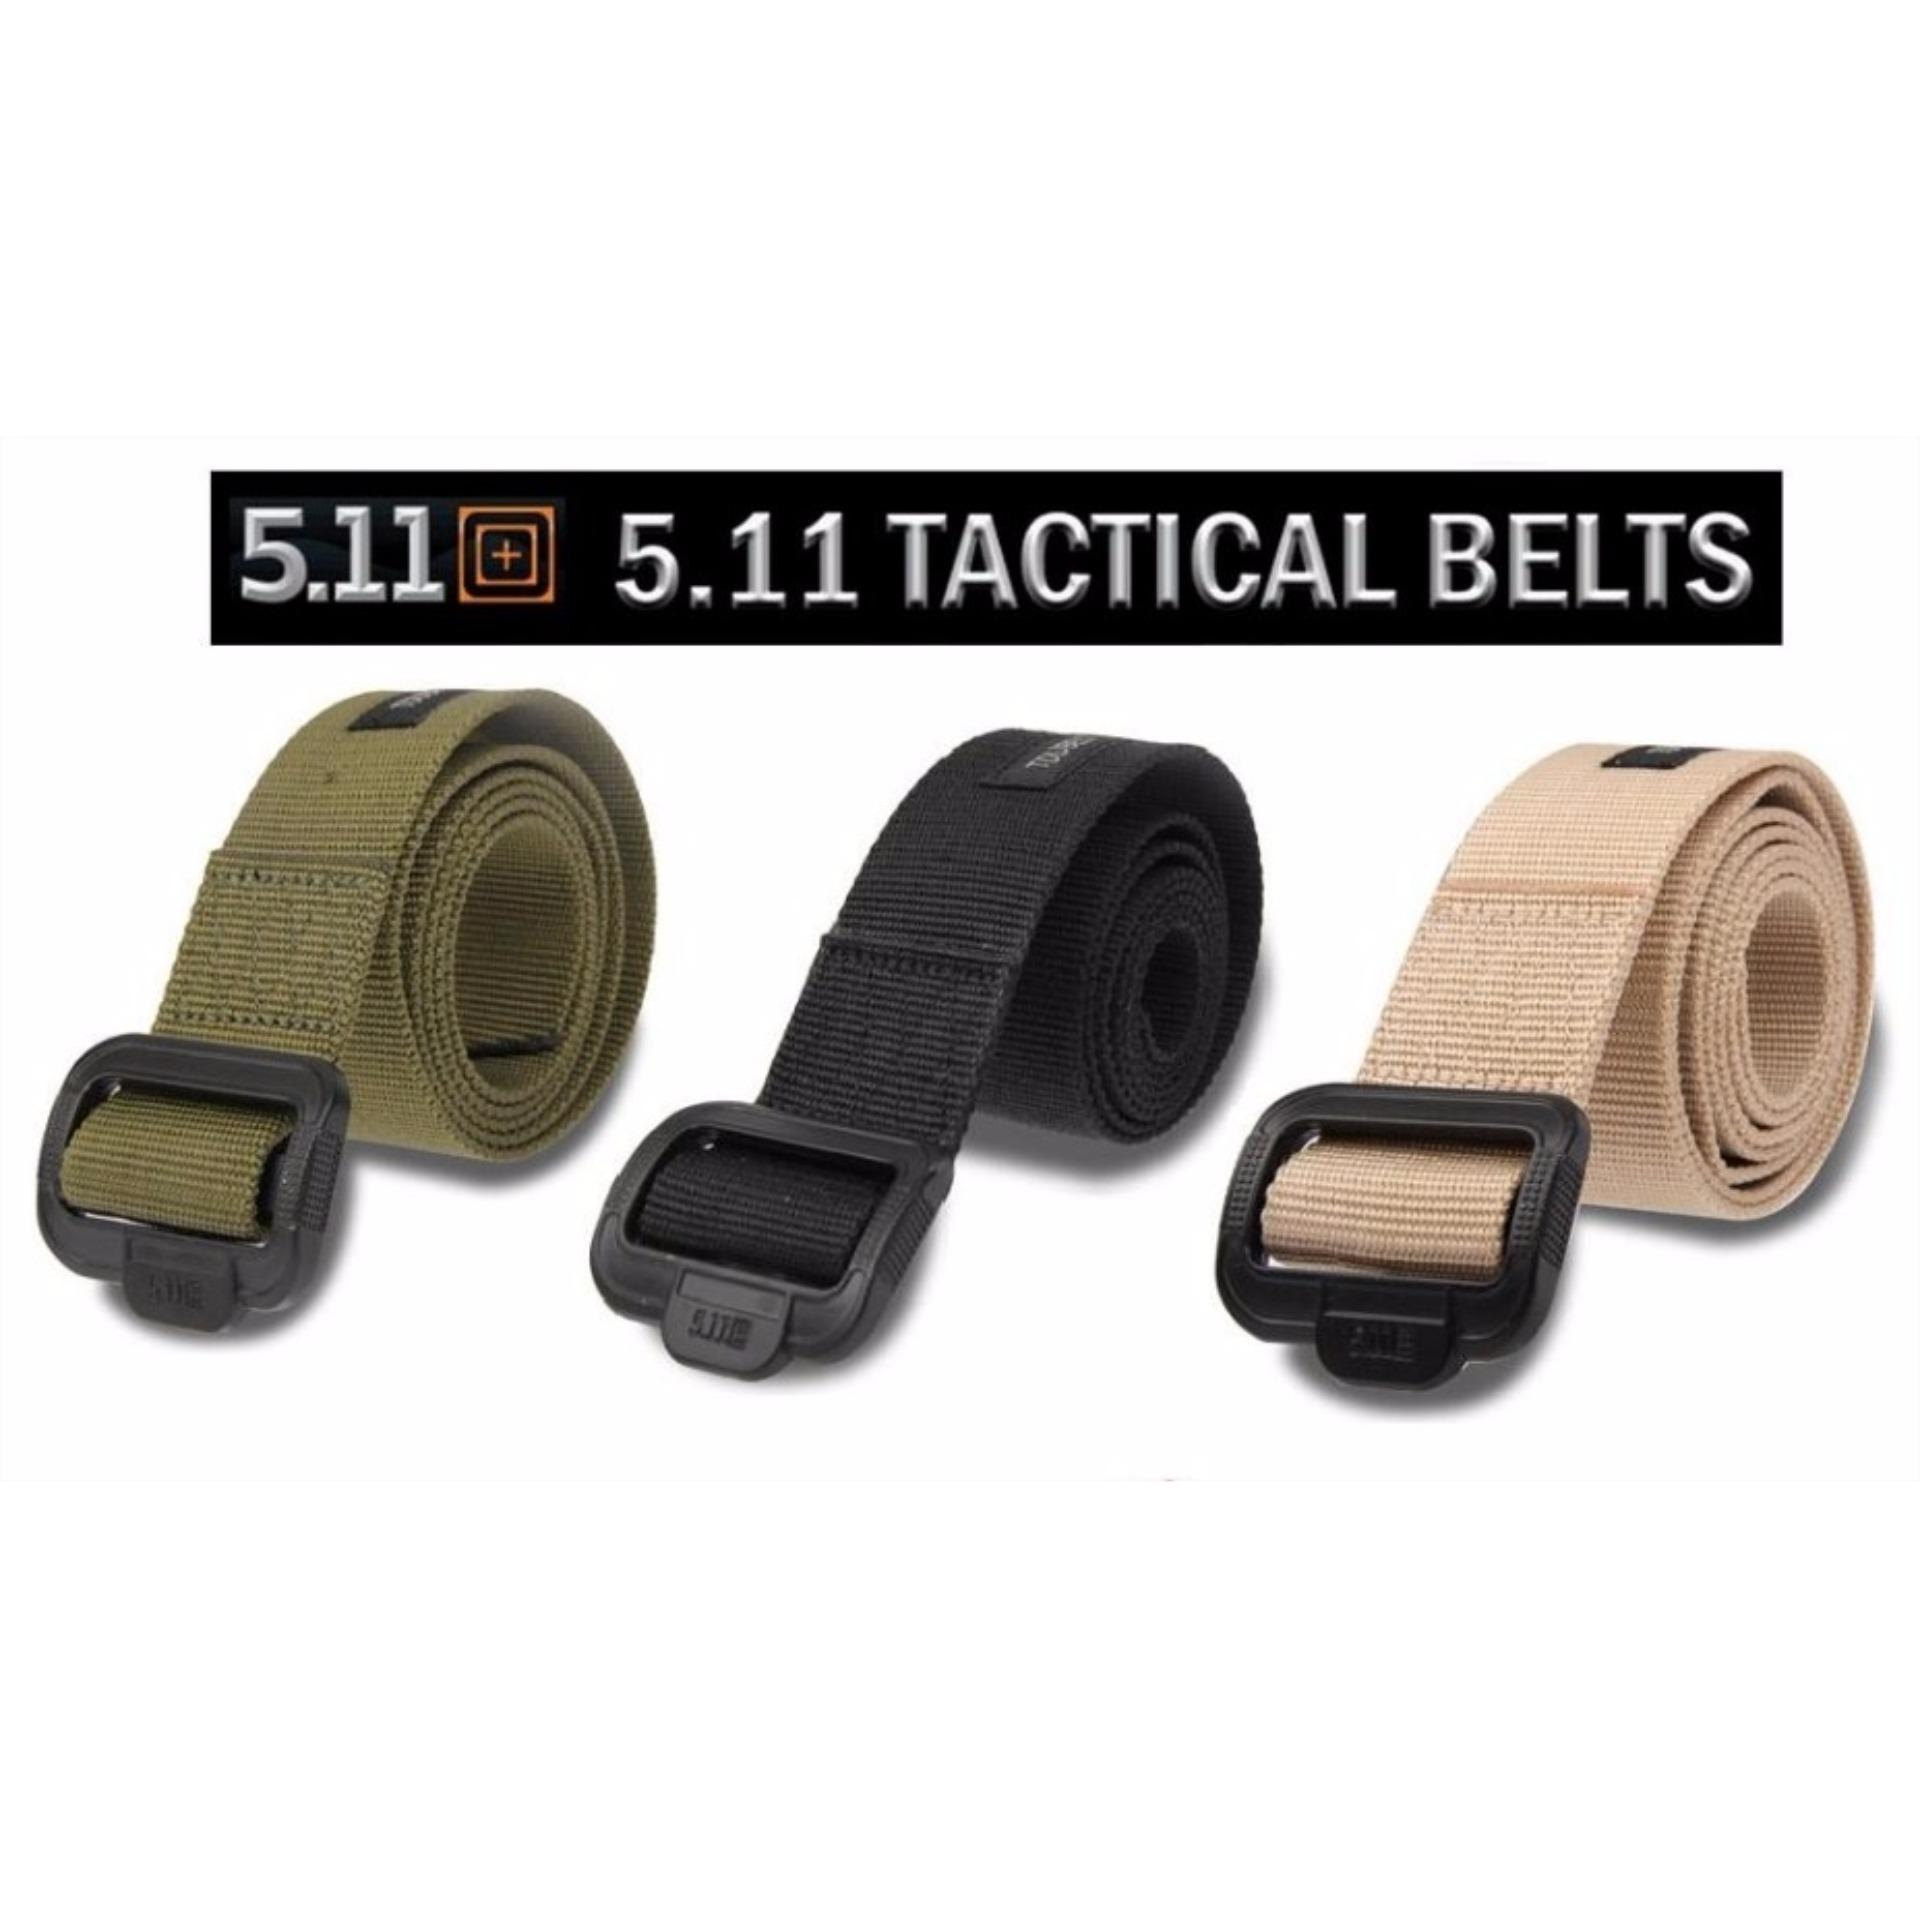 Jual Belt Tactical Series 511 Satu Set